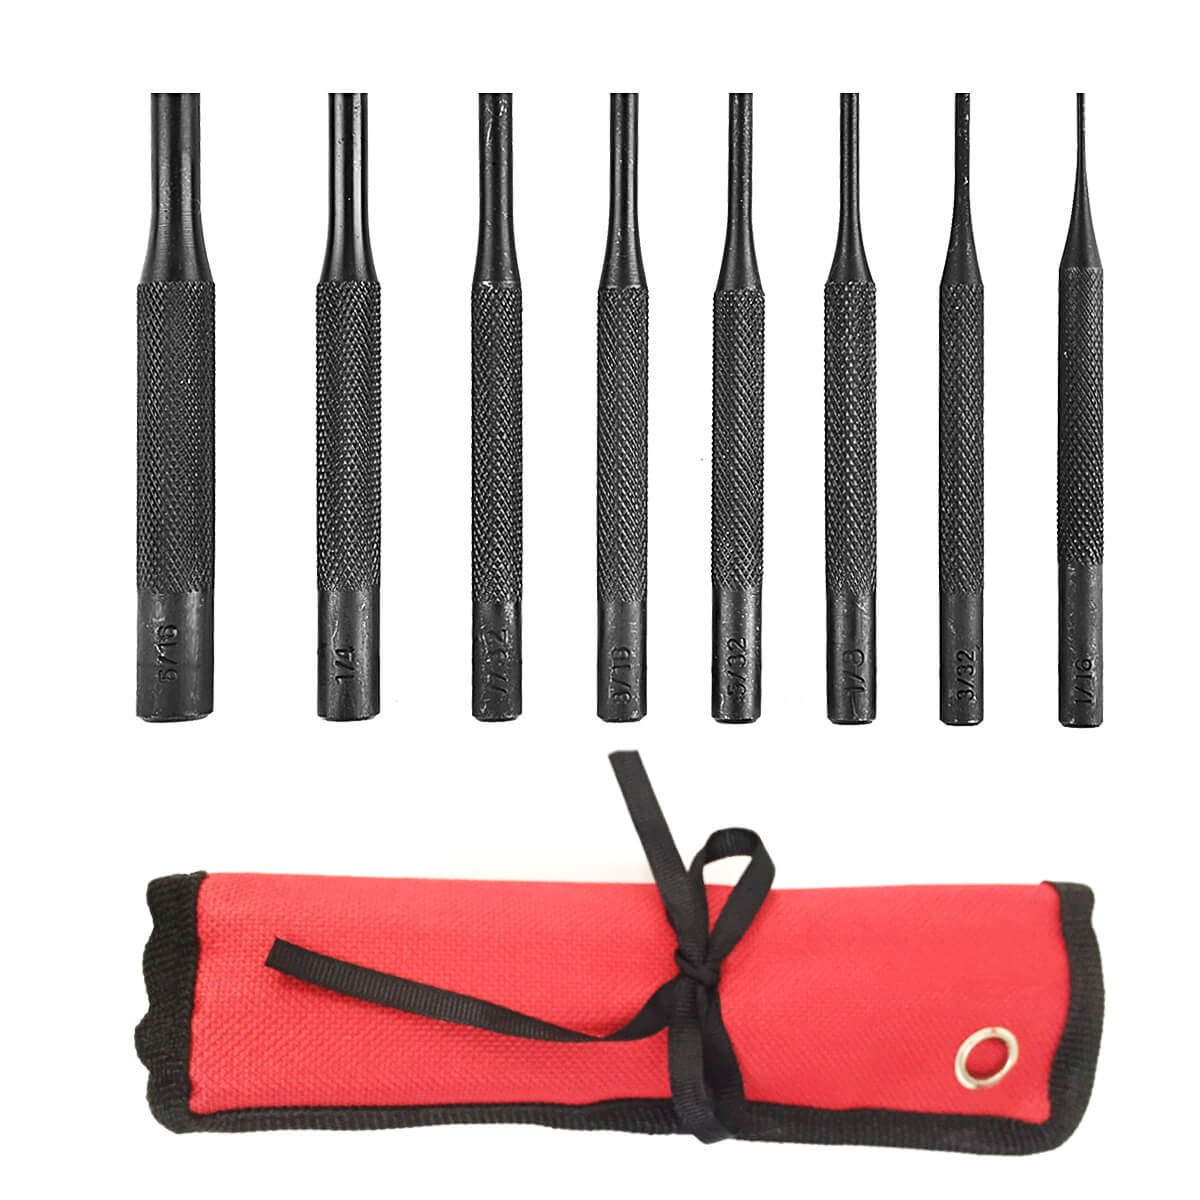 8 Pieces Pin Punch Set Tool - for Woodwork/Machinery/Automotive/Watch Repair/Jewelry/Repairs and Crafts with Carrying Bag